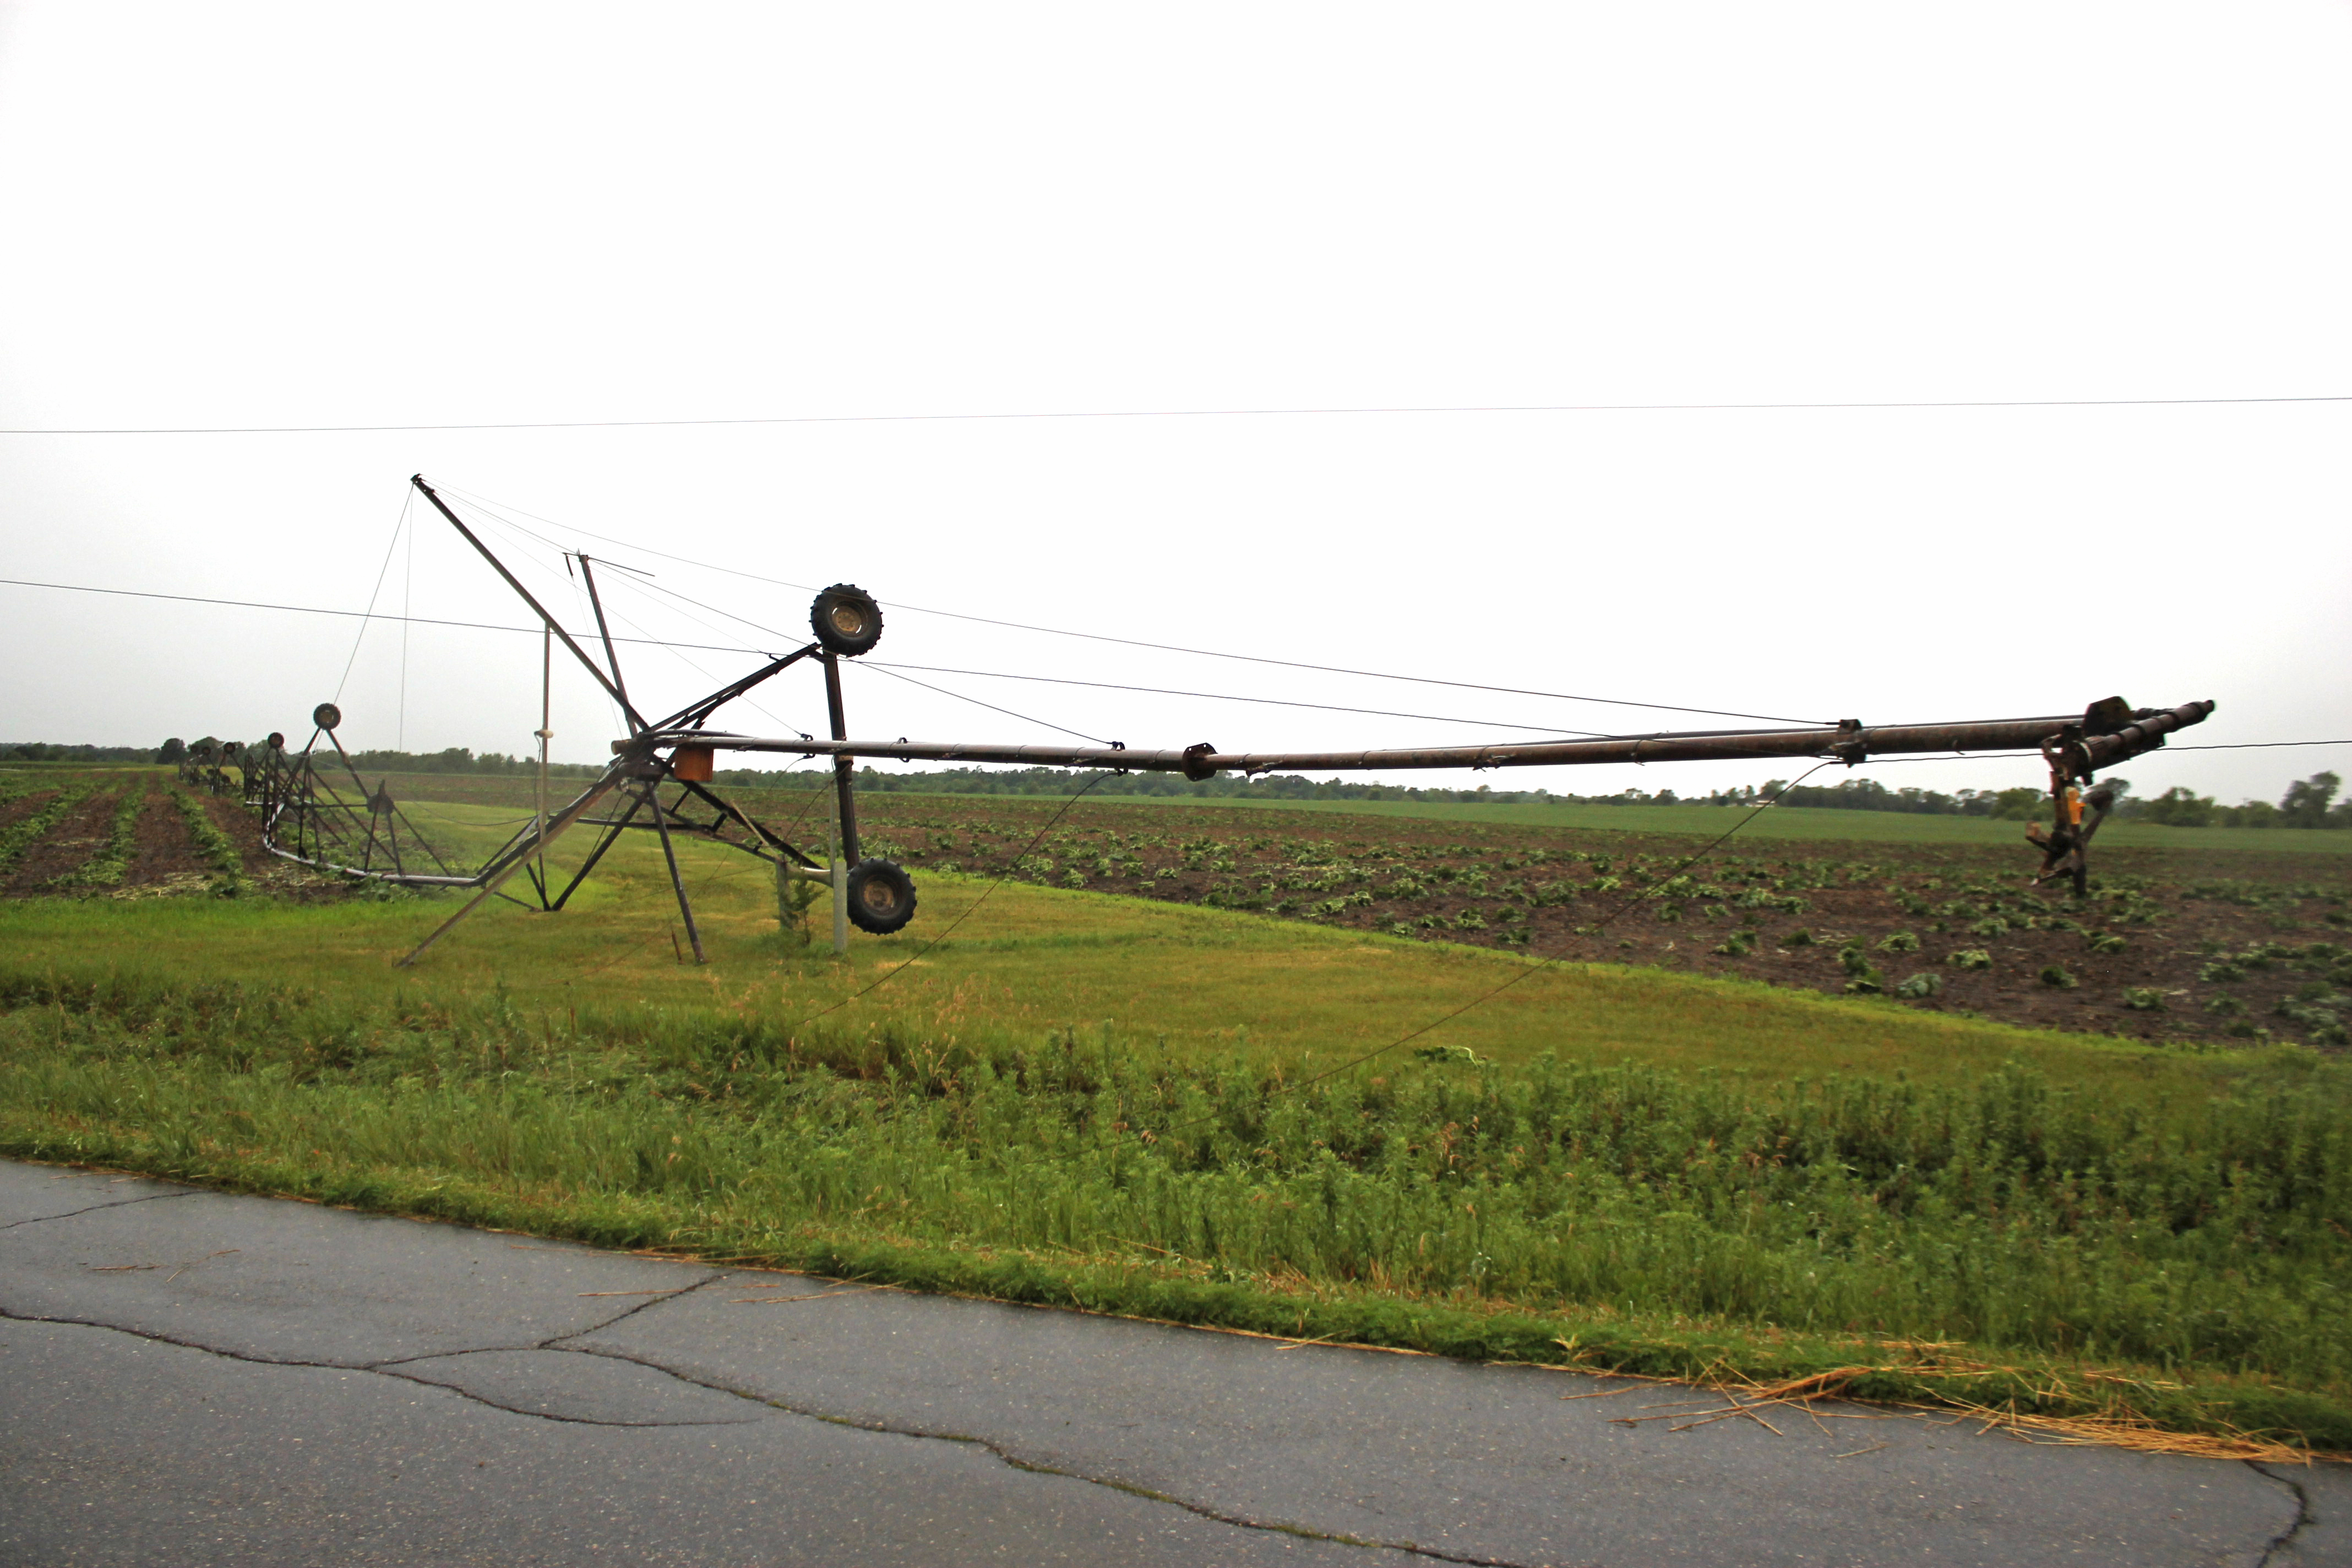 An irrigation system wrapped up in power lines.